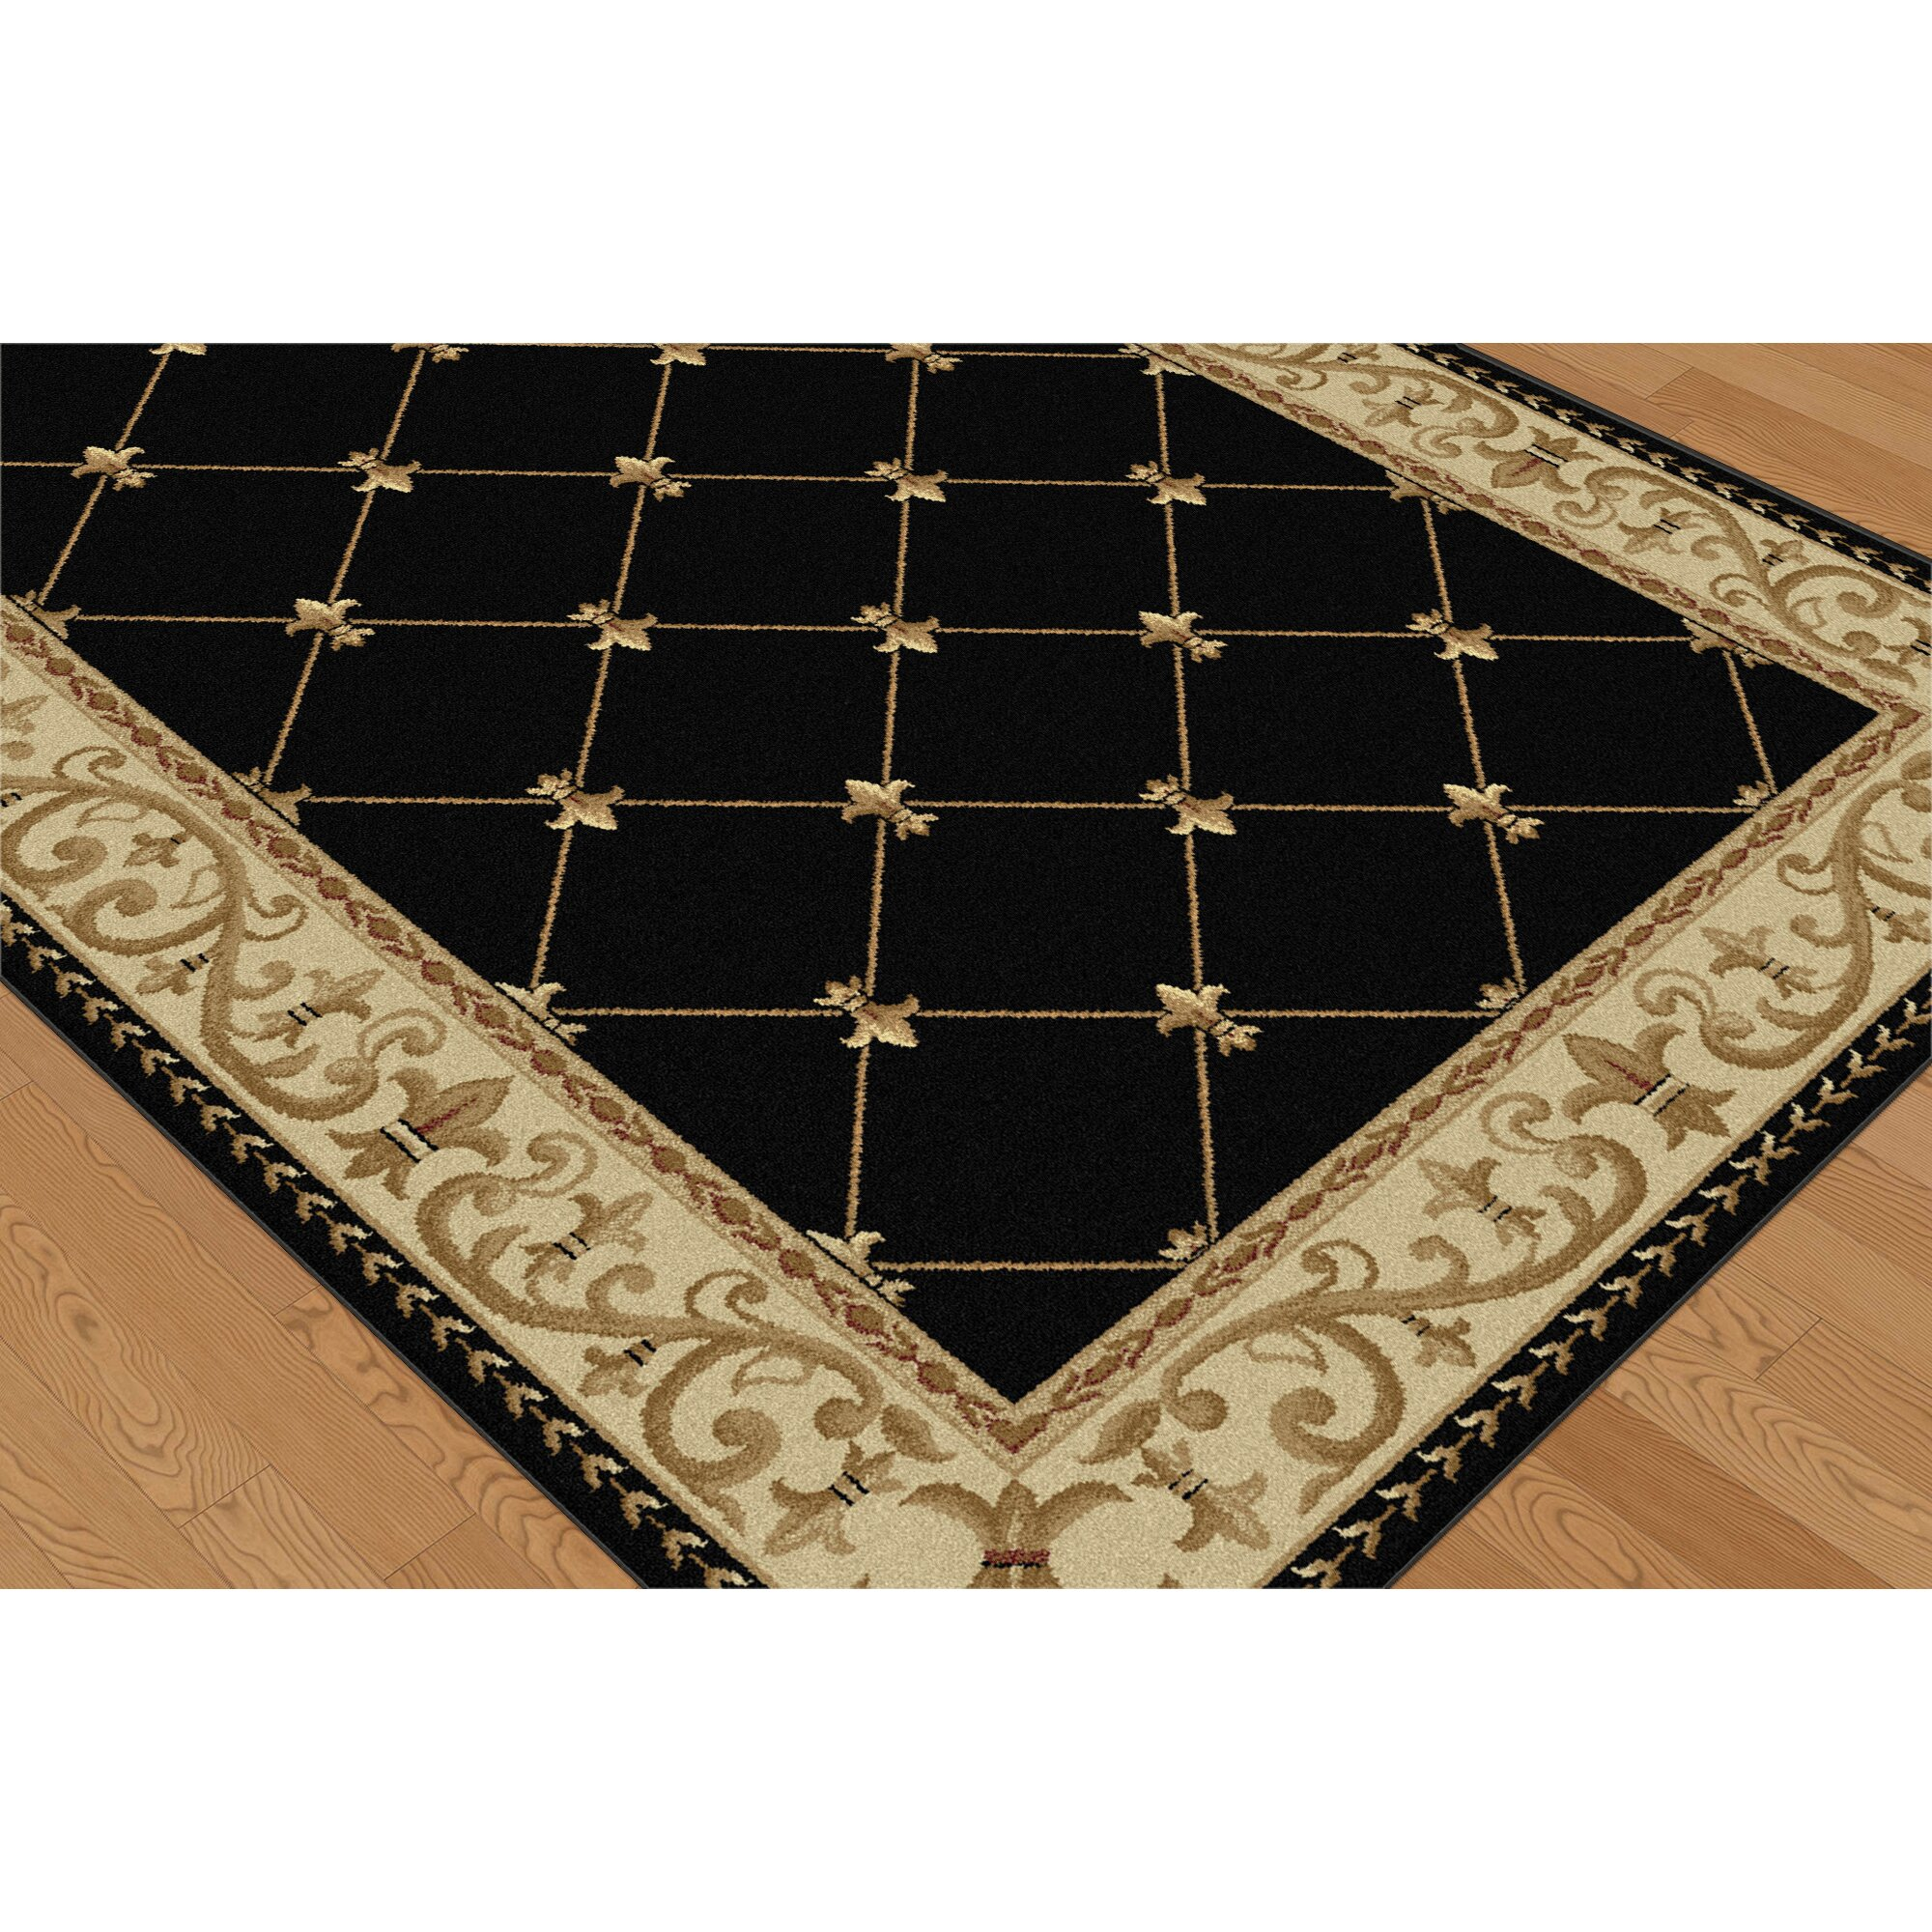 Large Area Rugs Gold: Threadbind Richmond Black/Gold Area Rug & Reviews